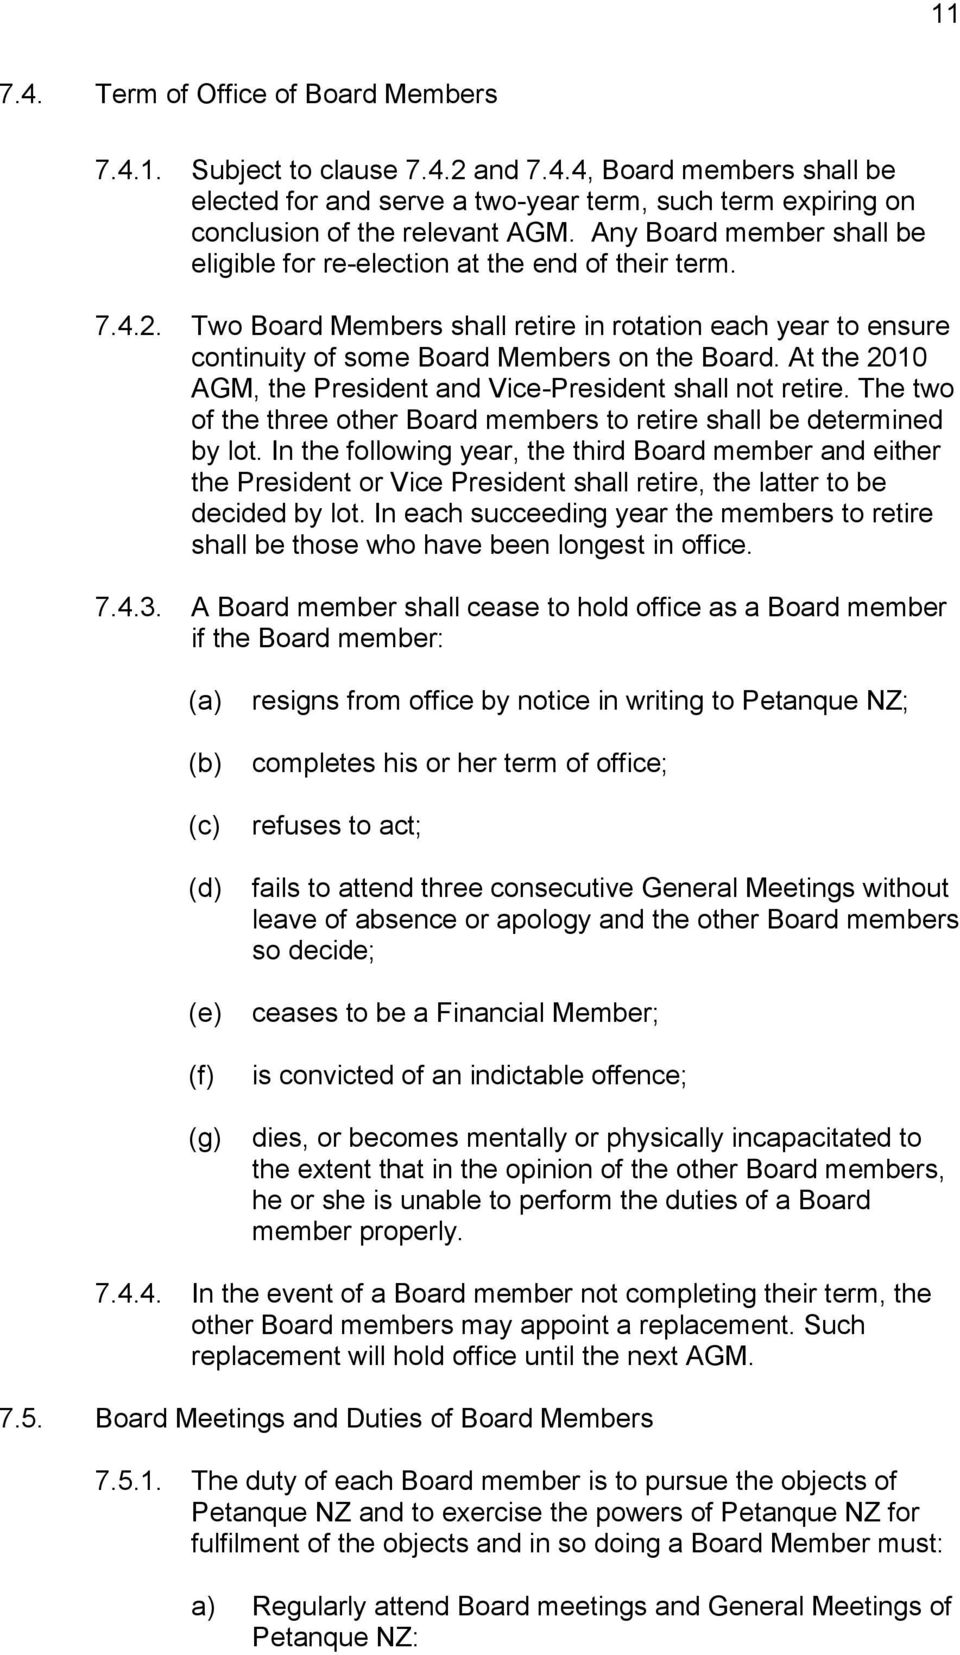 At the 2010 AGM, the President and Vice-President shall not retire. The two of the three other Board members to retire shall be determined by lot.